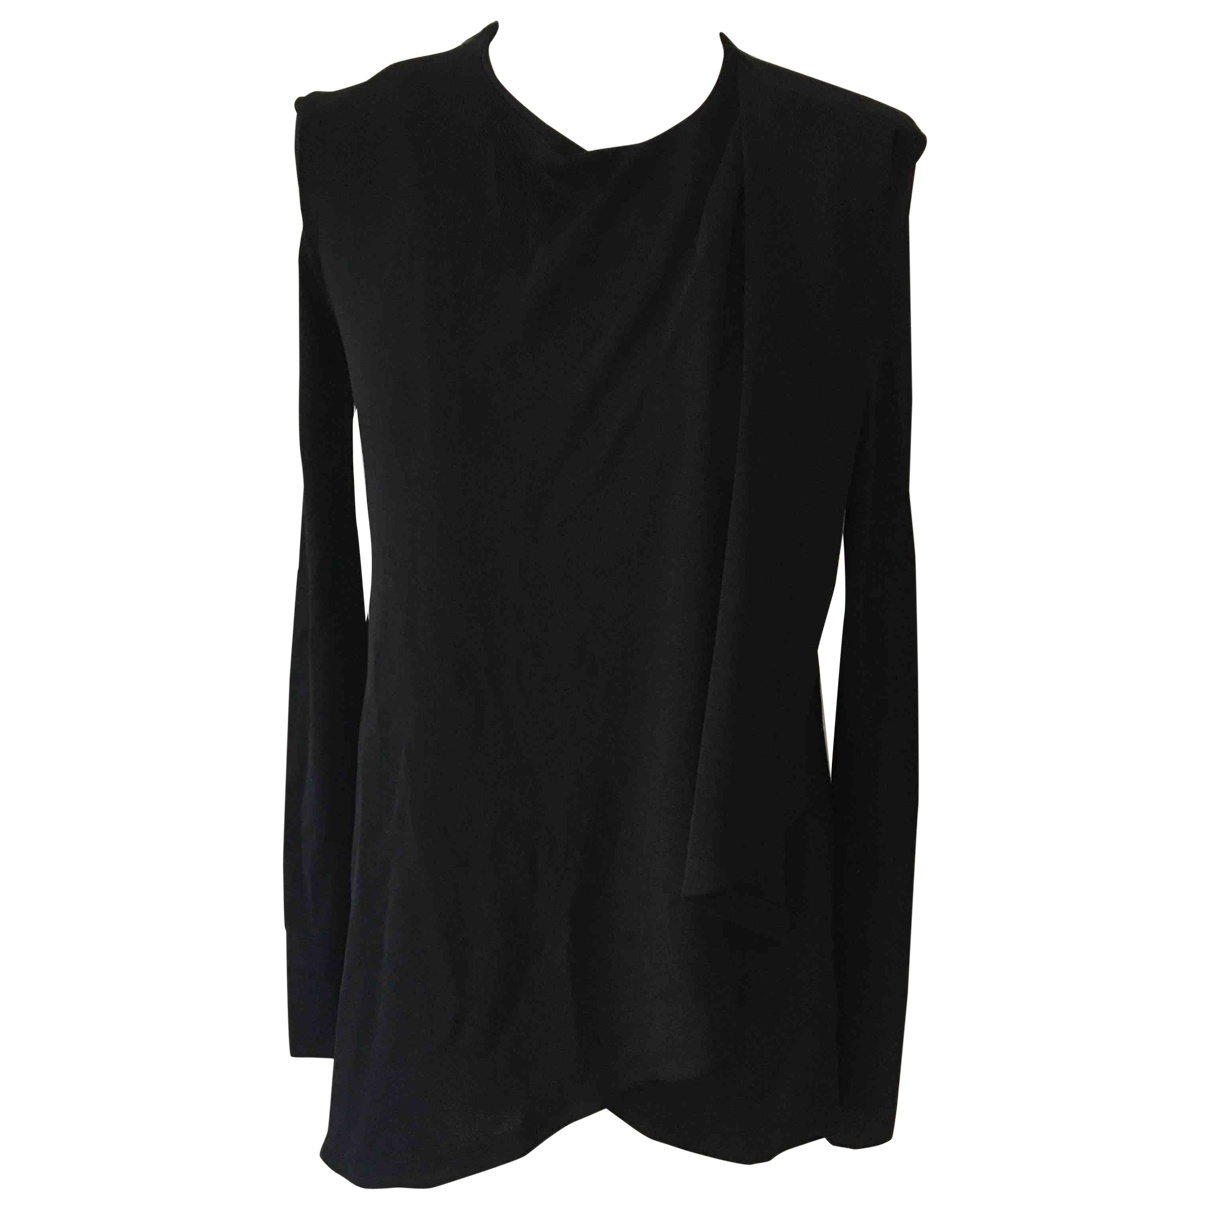 Givenchy \N Top in  Schwarz Viskose